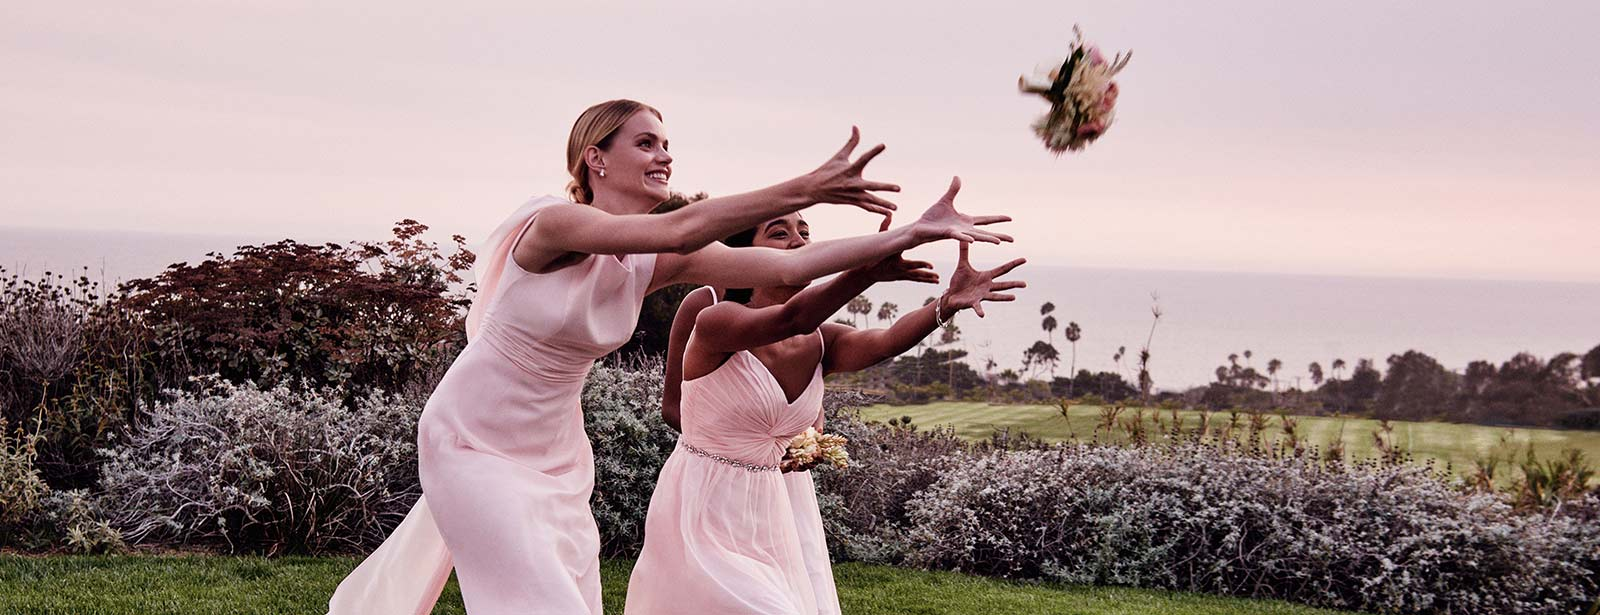 Mismatched Bridal Party Reaches for Tossed Bouquet